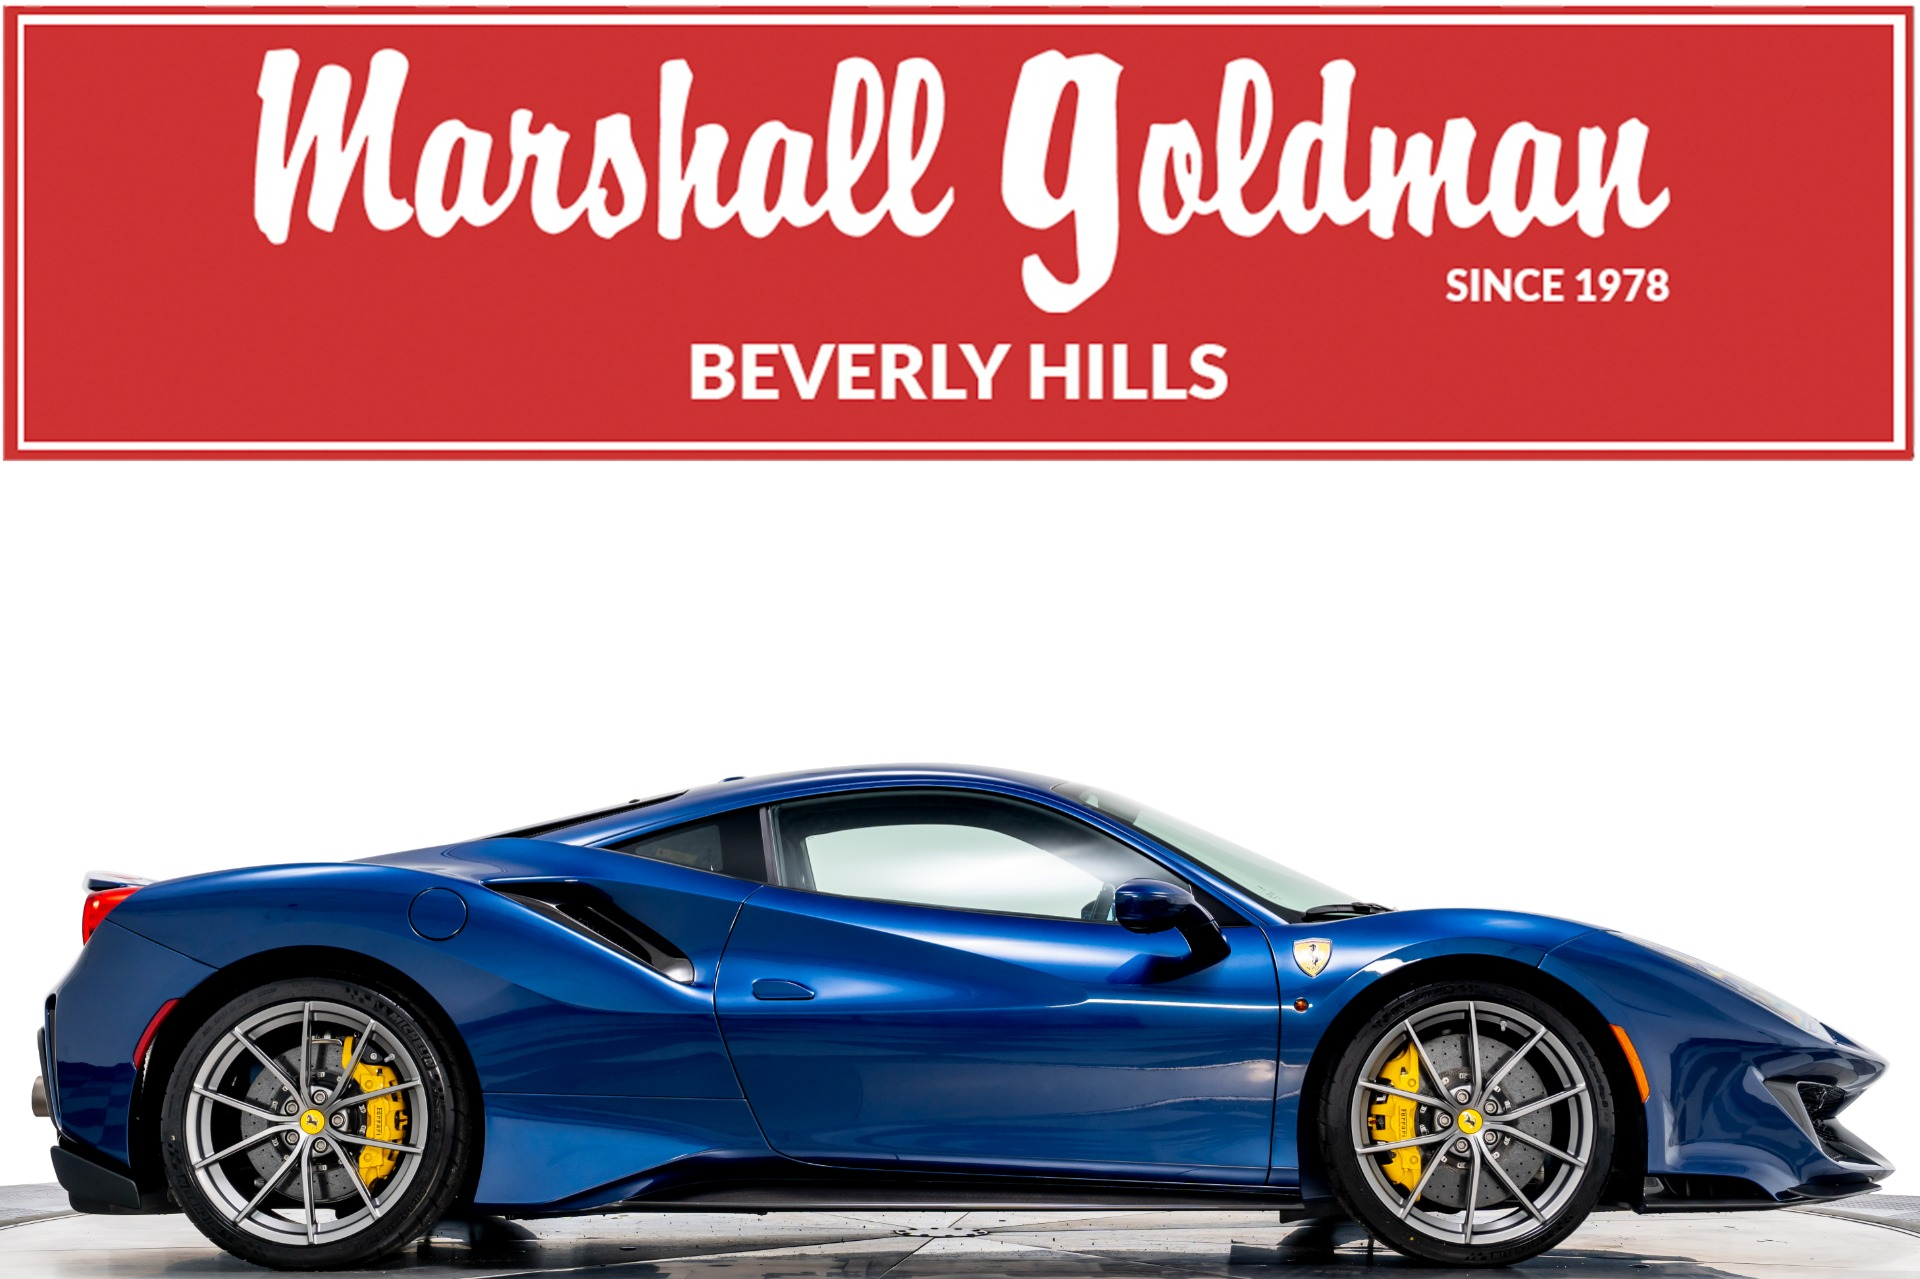 Used 2020 Ferrari 488 Pista For Sale Sold Marshall Goldman Beverly Hills Stock B20700